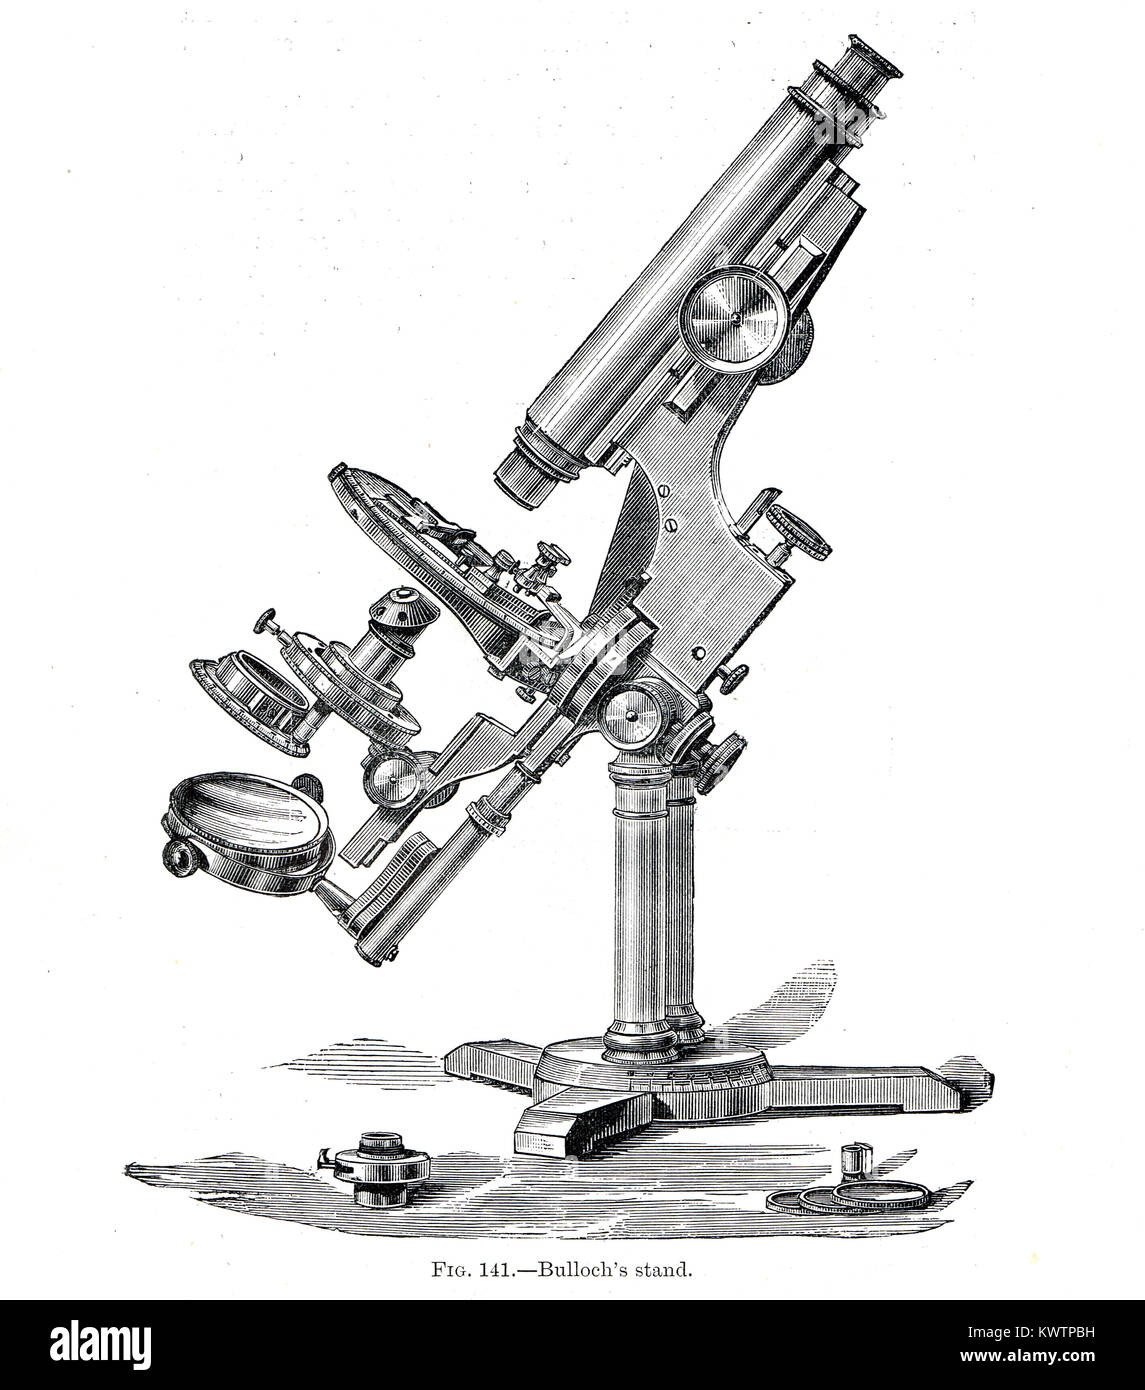 Bulloch's stand, microscope - Stock Image